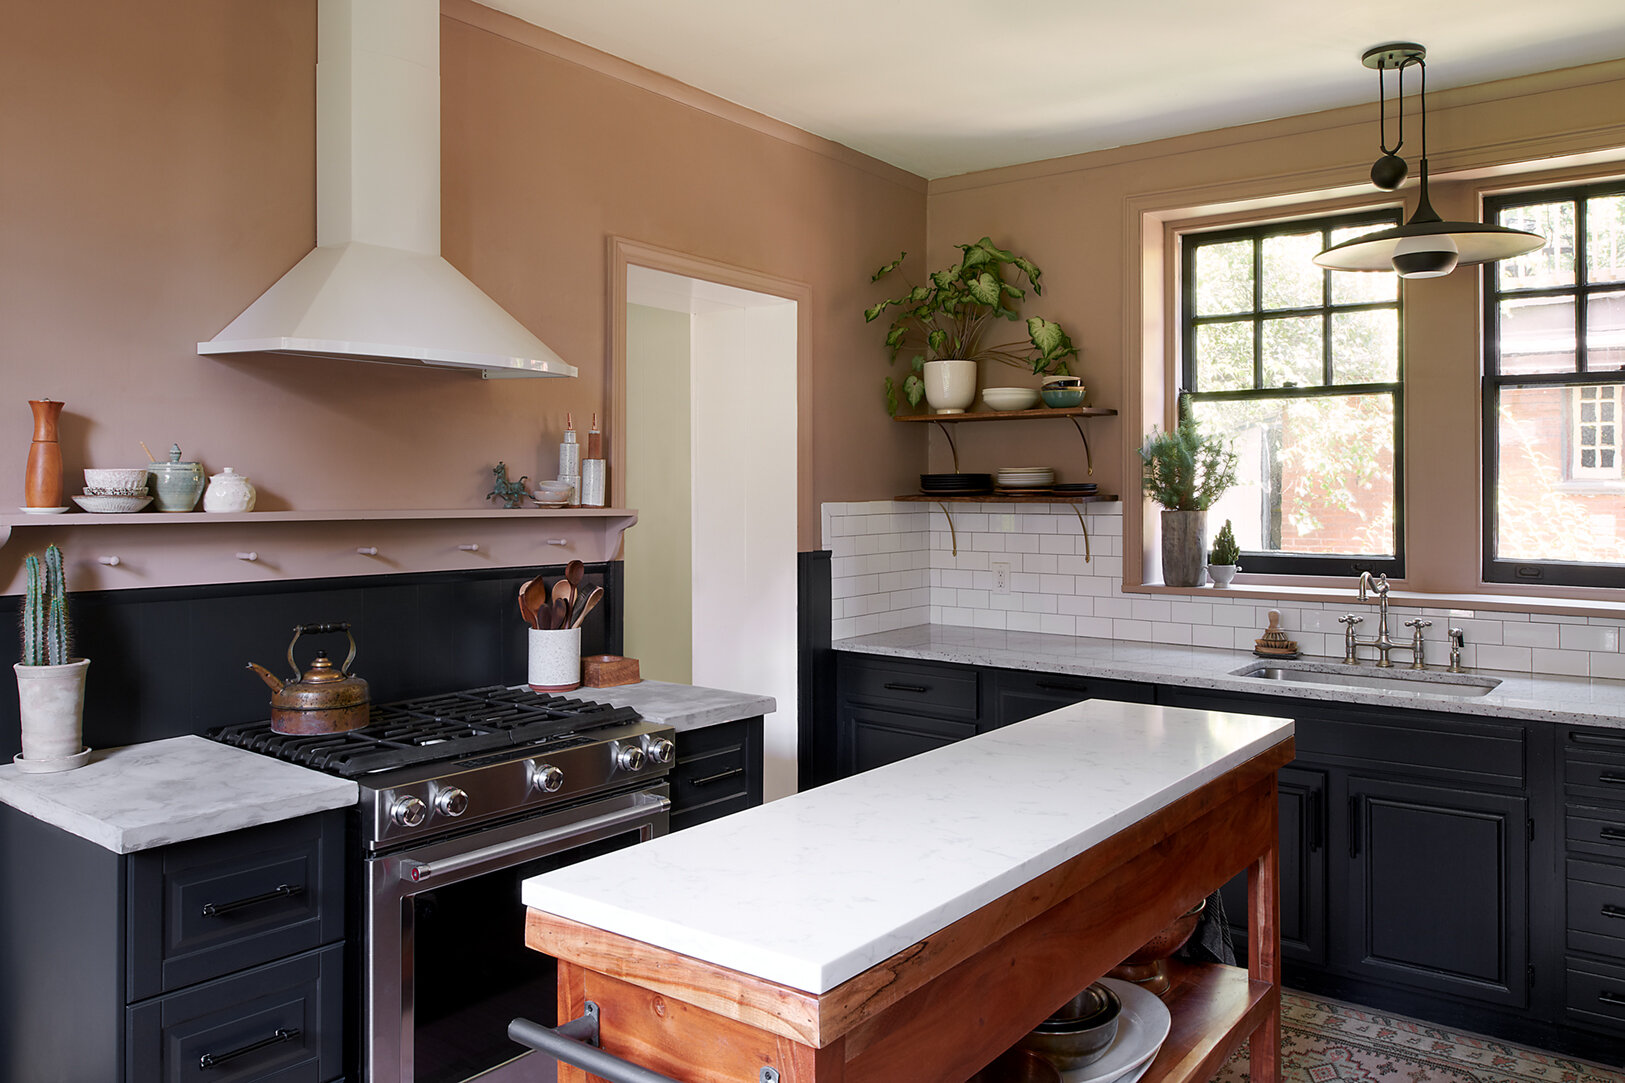 kitchen_lowres_overall_01.jpg